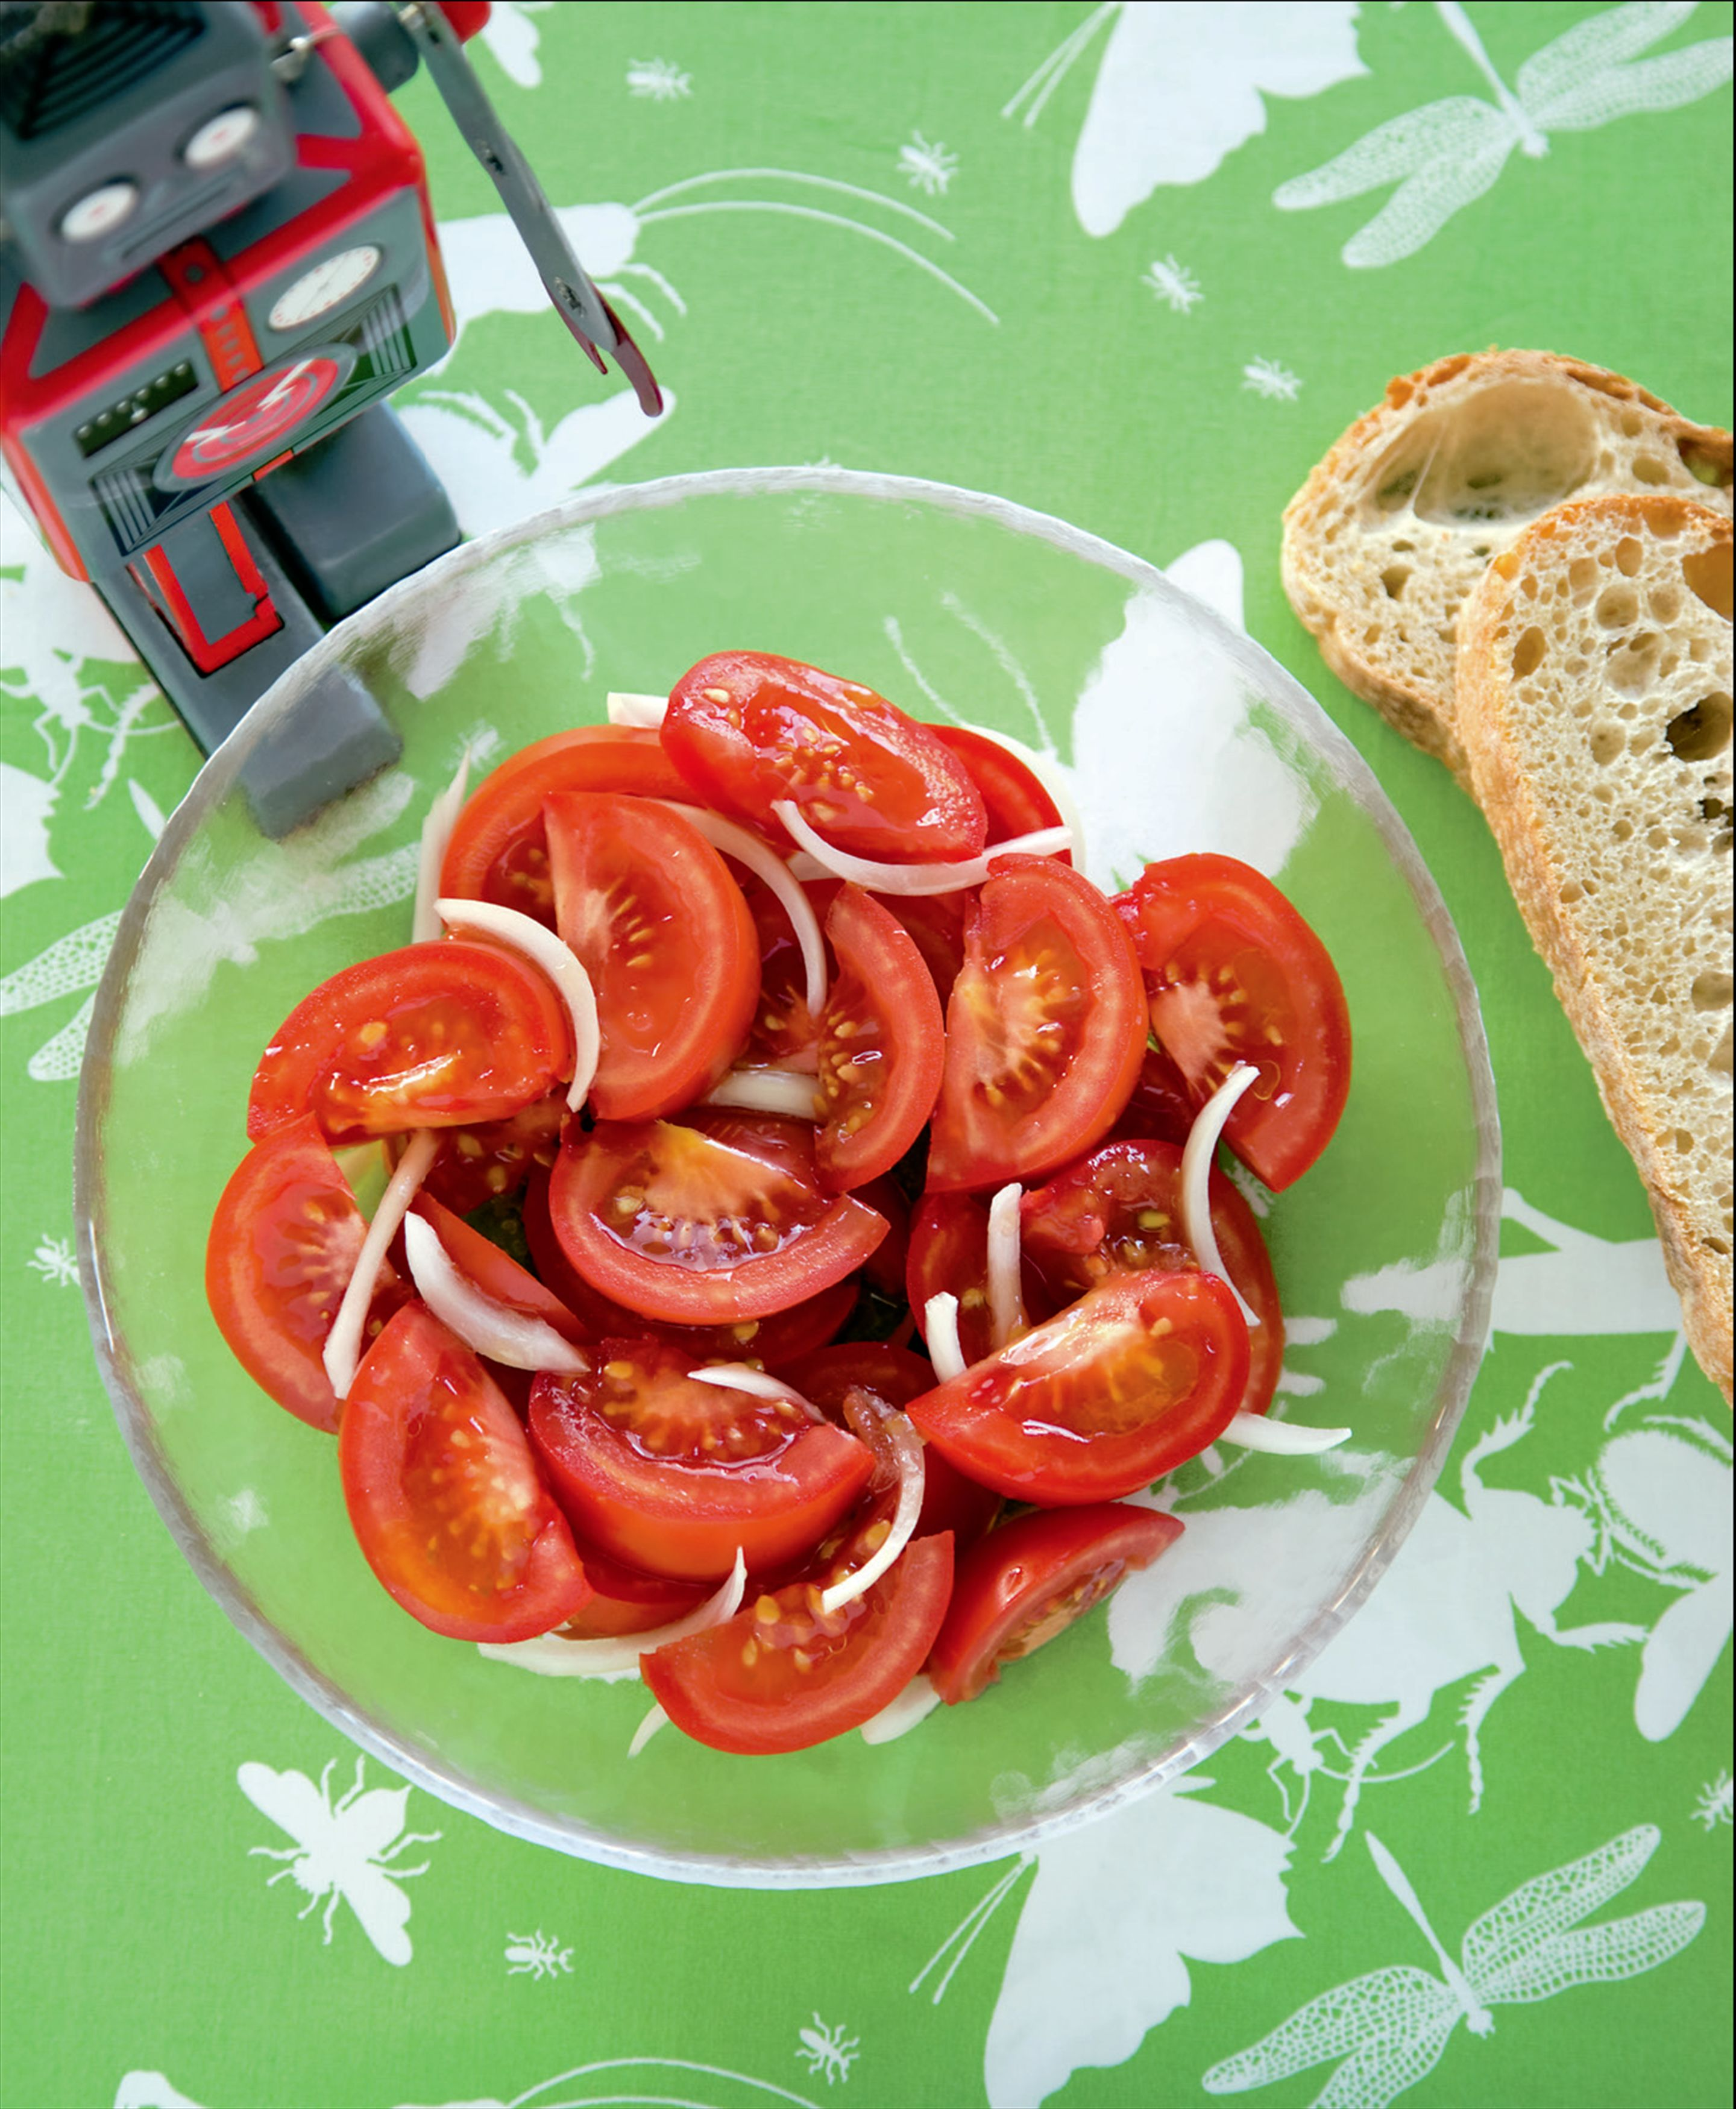 Juicy tomato salad